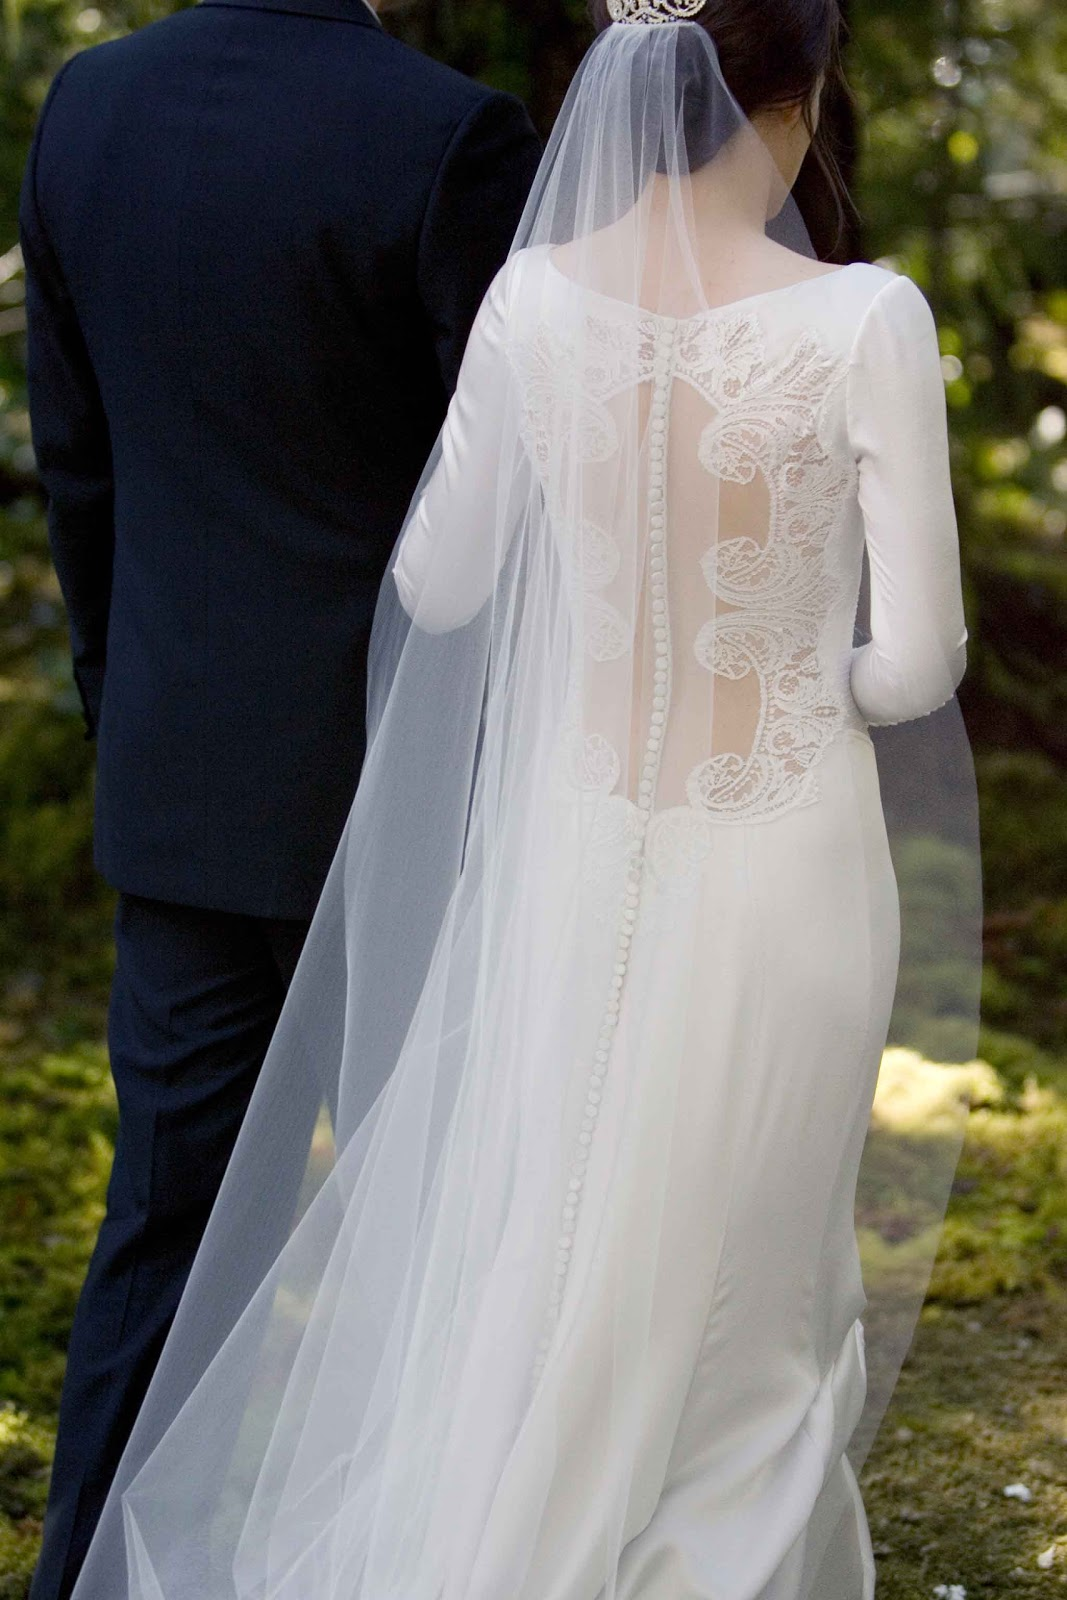 Something to muse about images of bellas wedding dress summit has released today more images of the caroline herrera dress that kristen stewart wore in twilight breaking dawn part one junglespirit Images